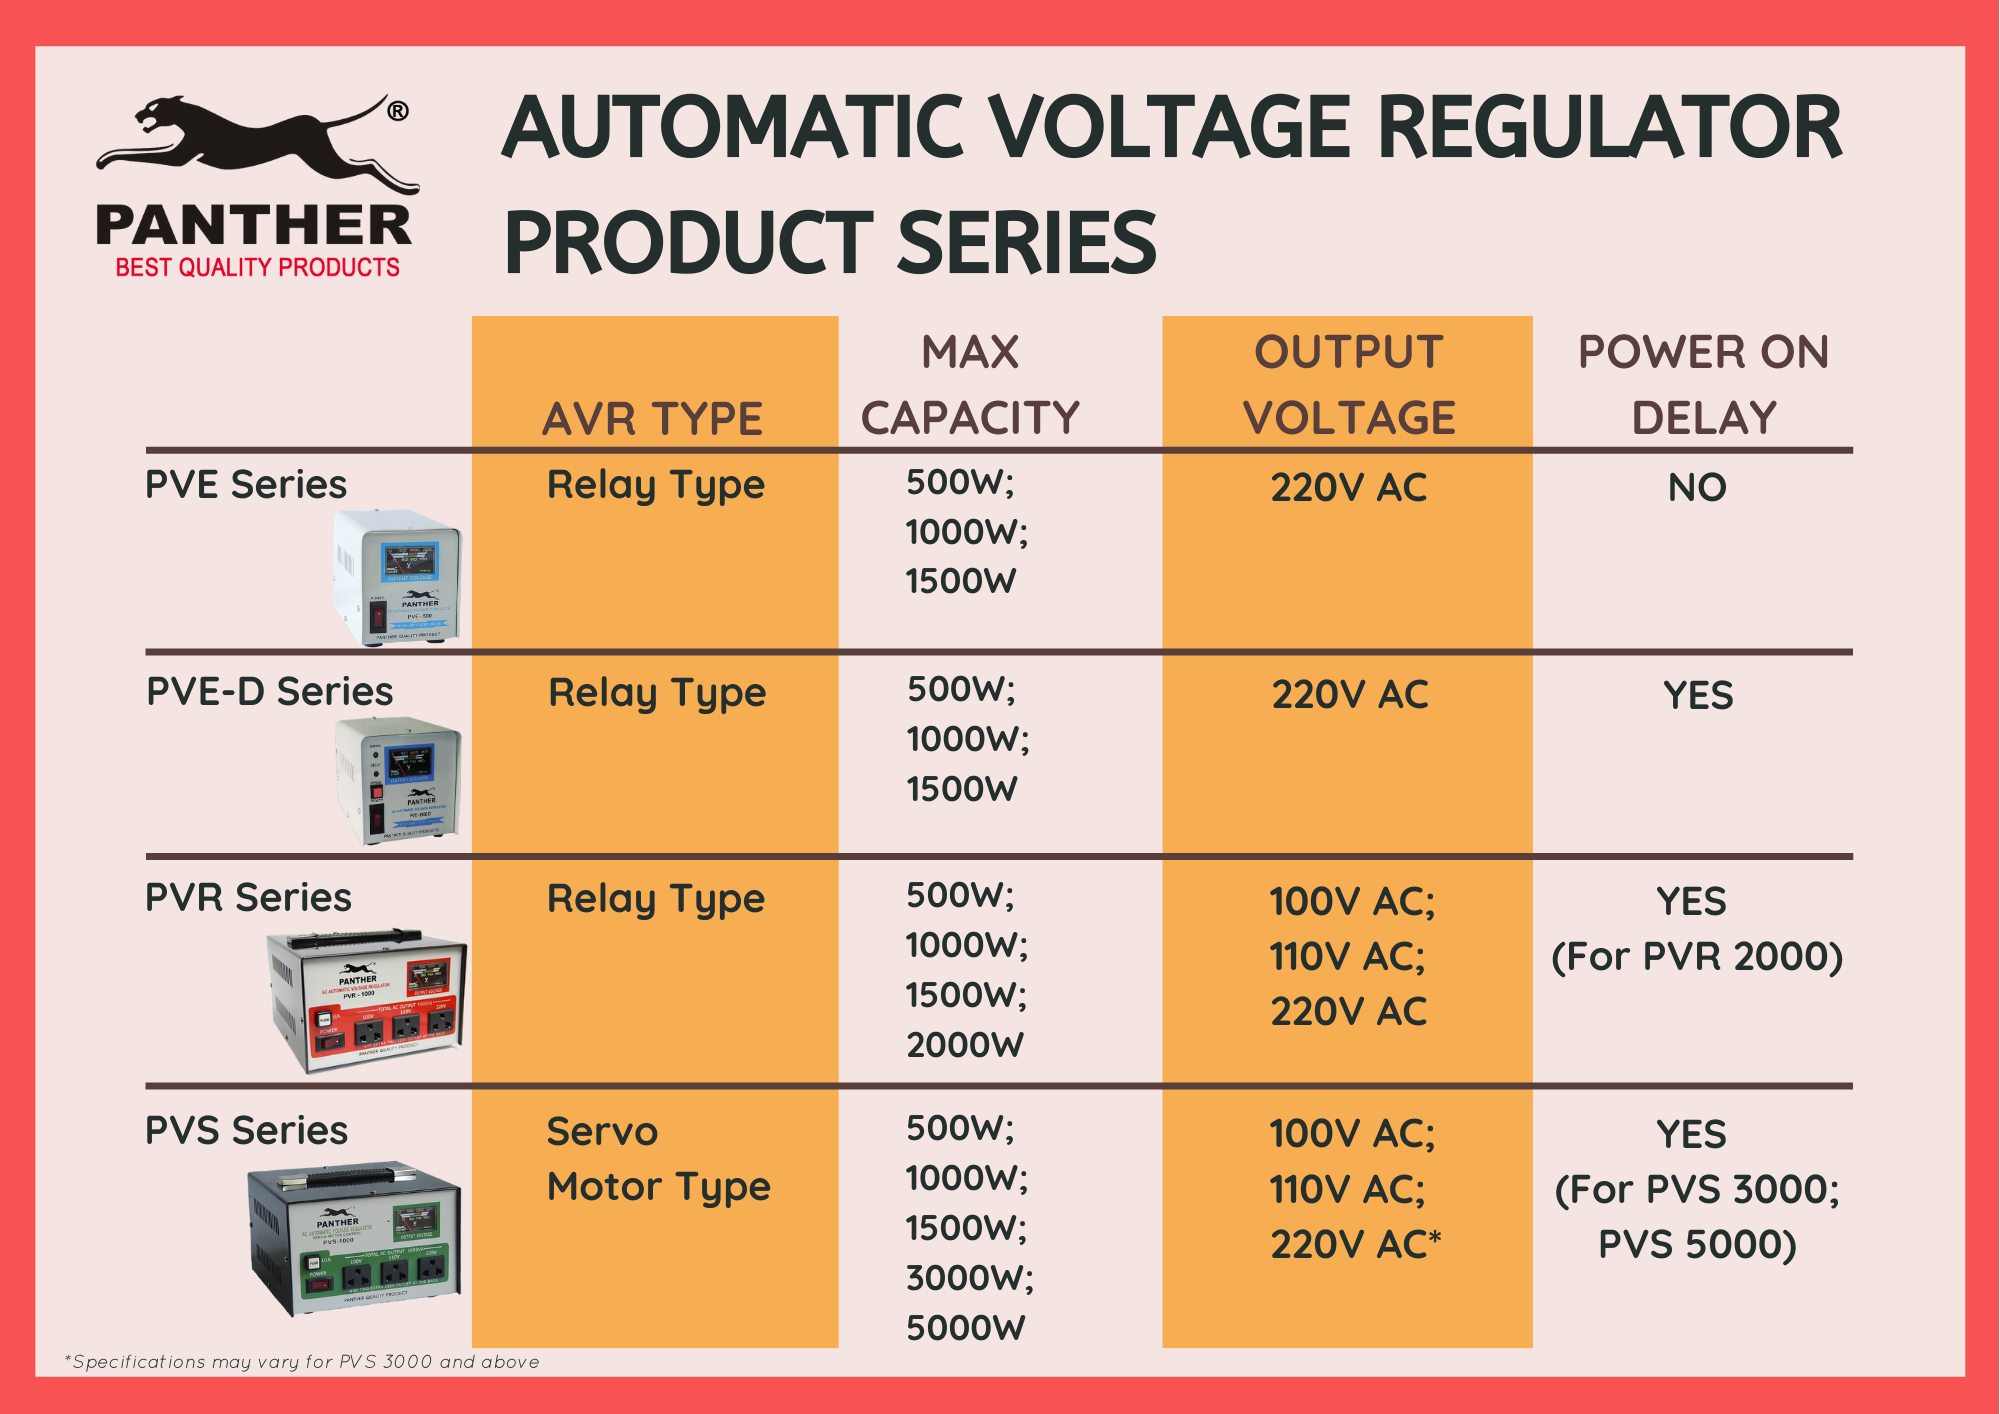 Buyer's Guide to Purchasing the Best AVR (Automatic Voltage Regulator)  [2021 Update] - Panther